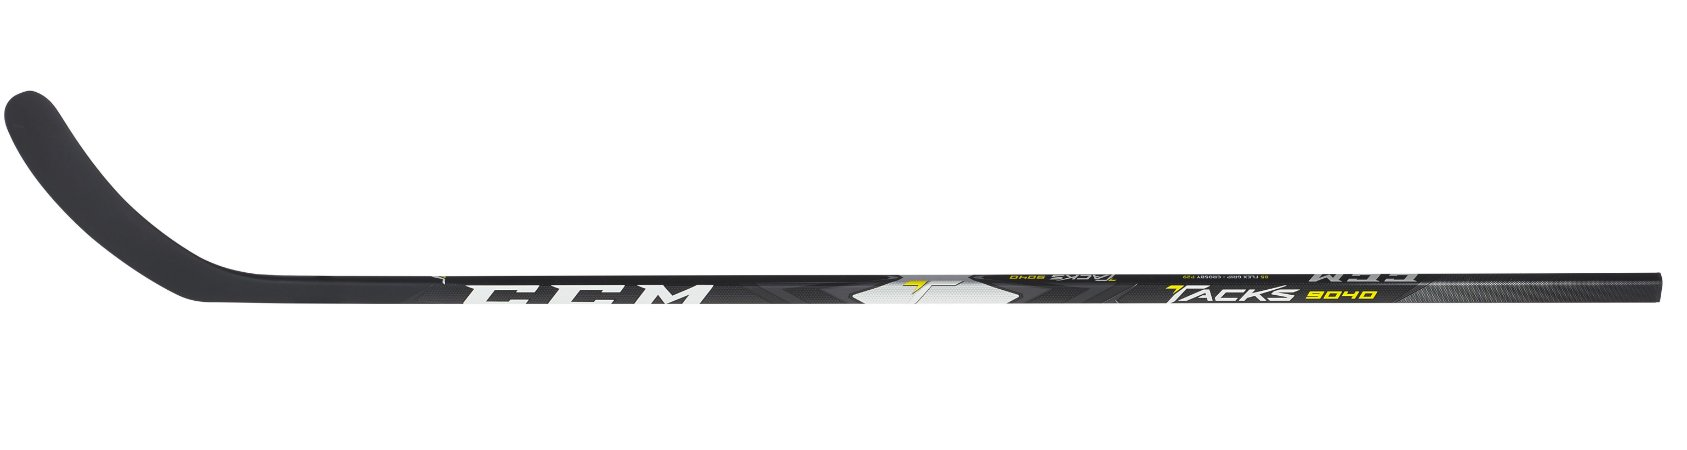 STICK CCM TACKS 9040